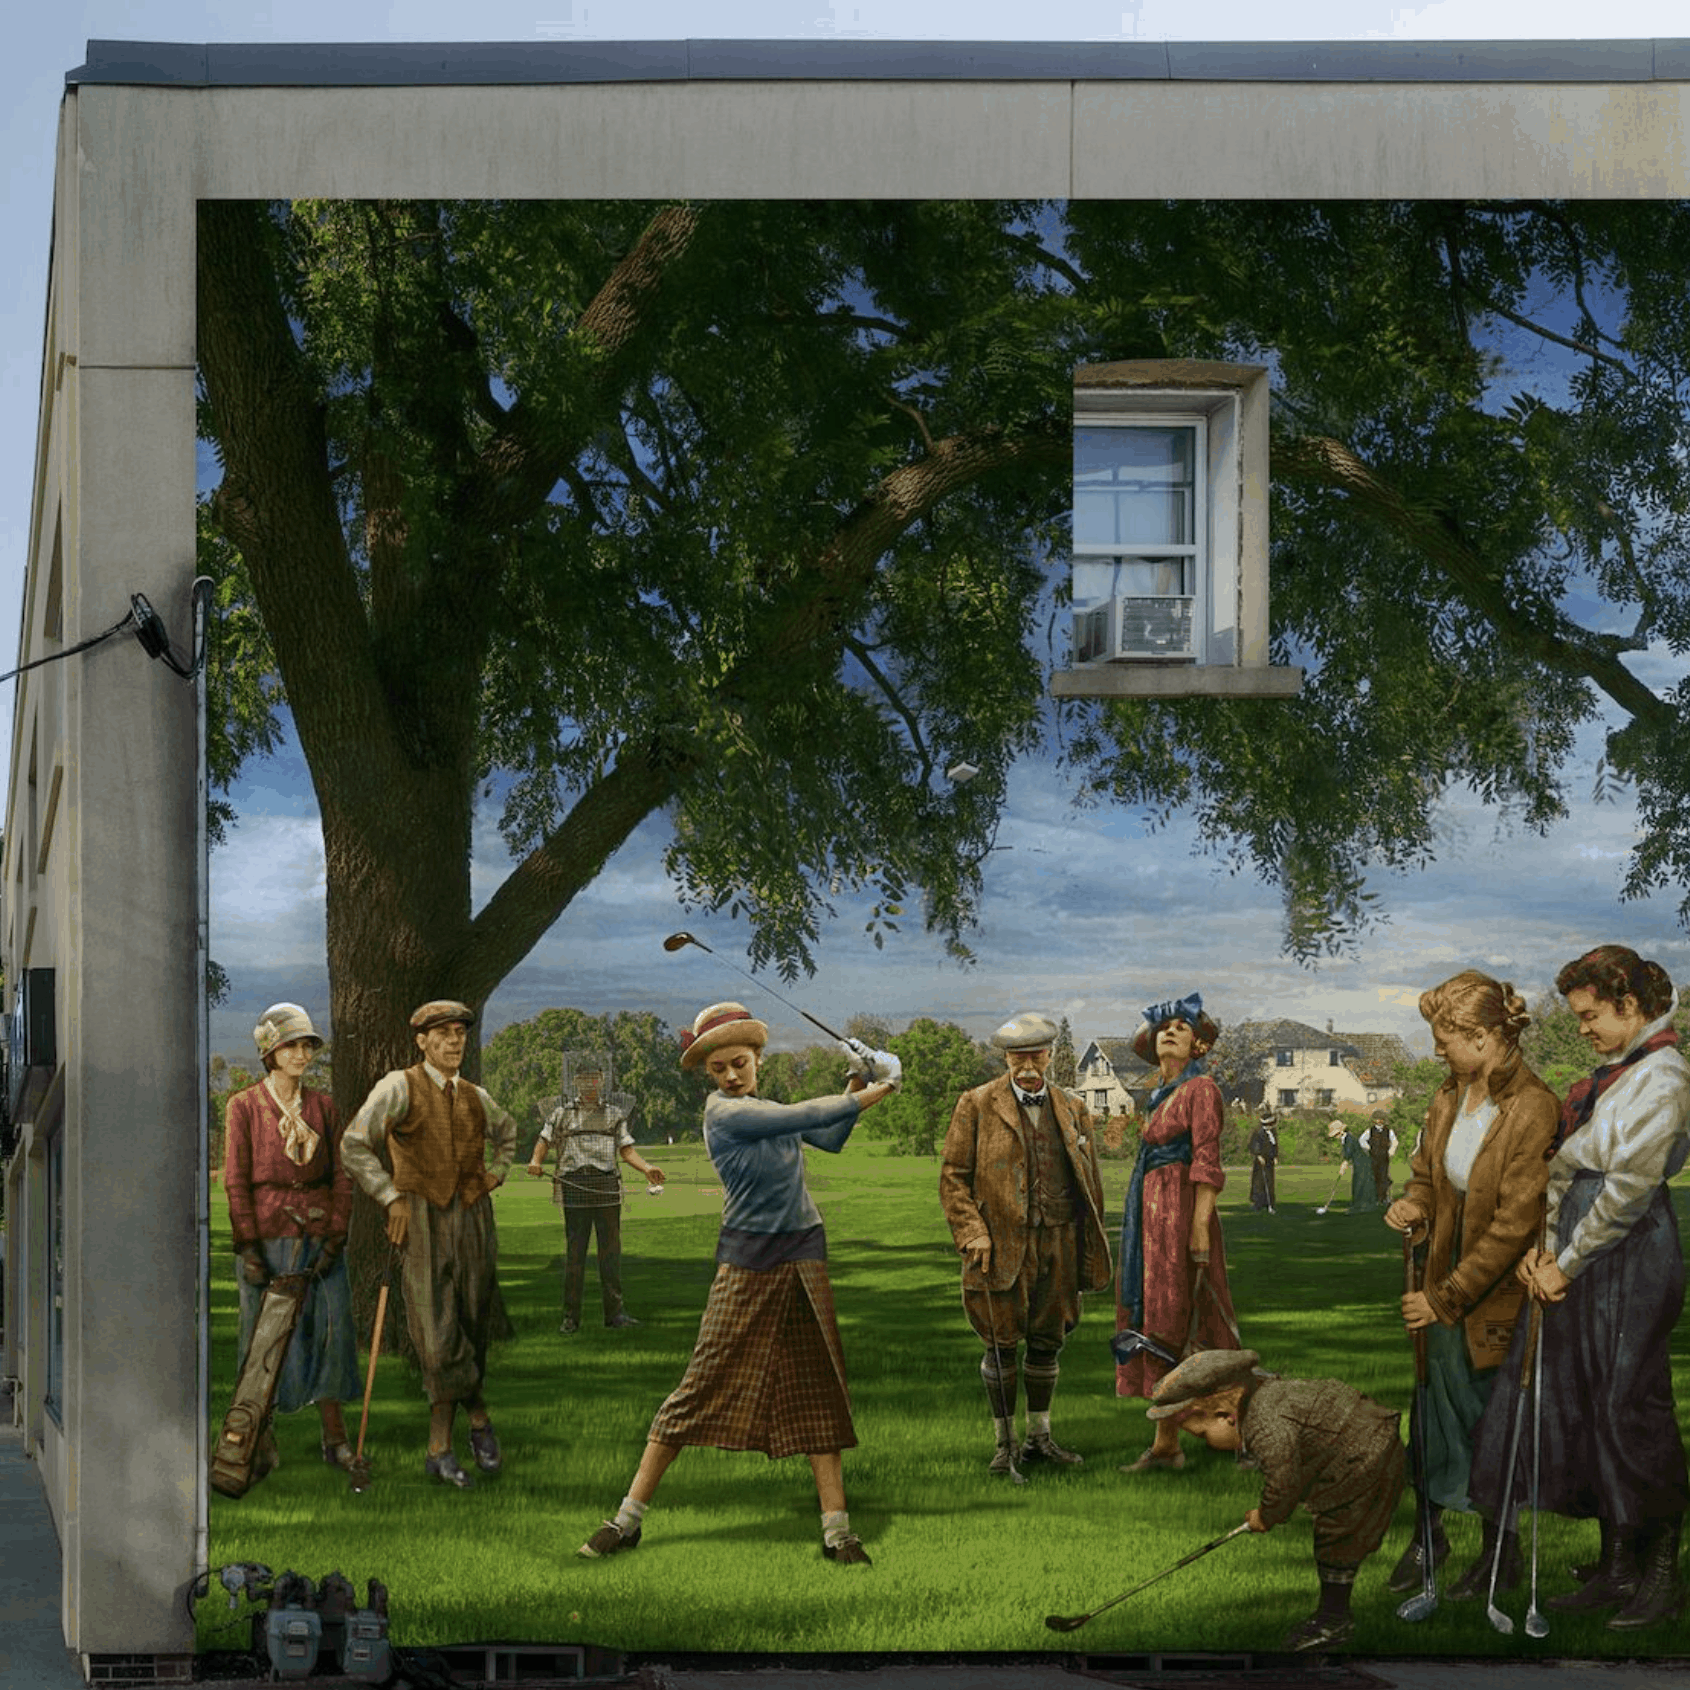 mural of people golfing